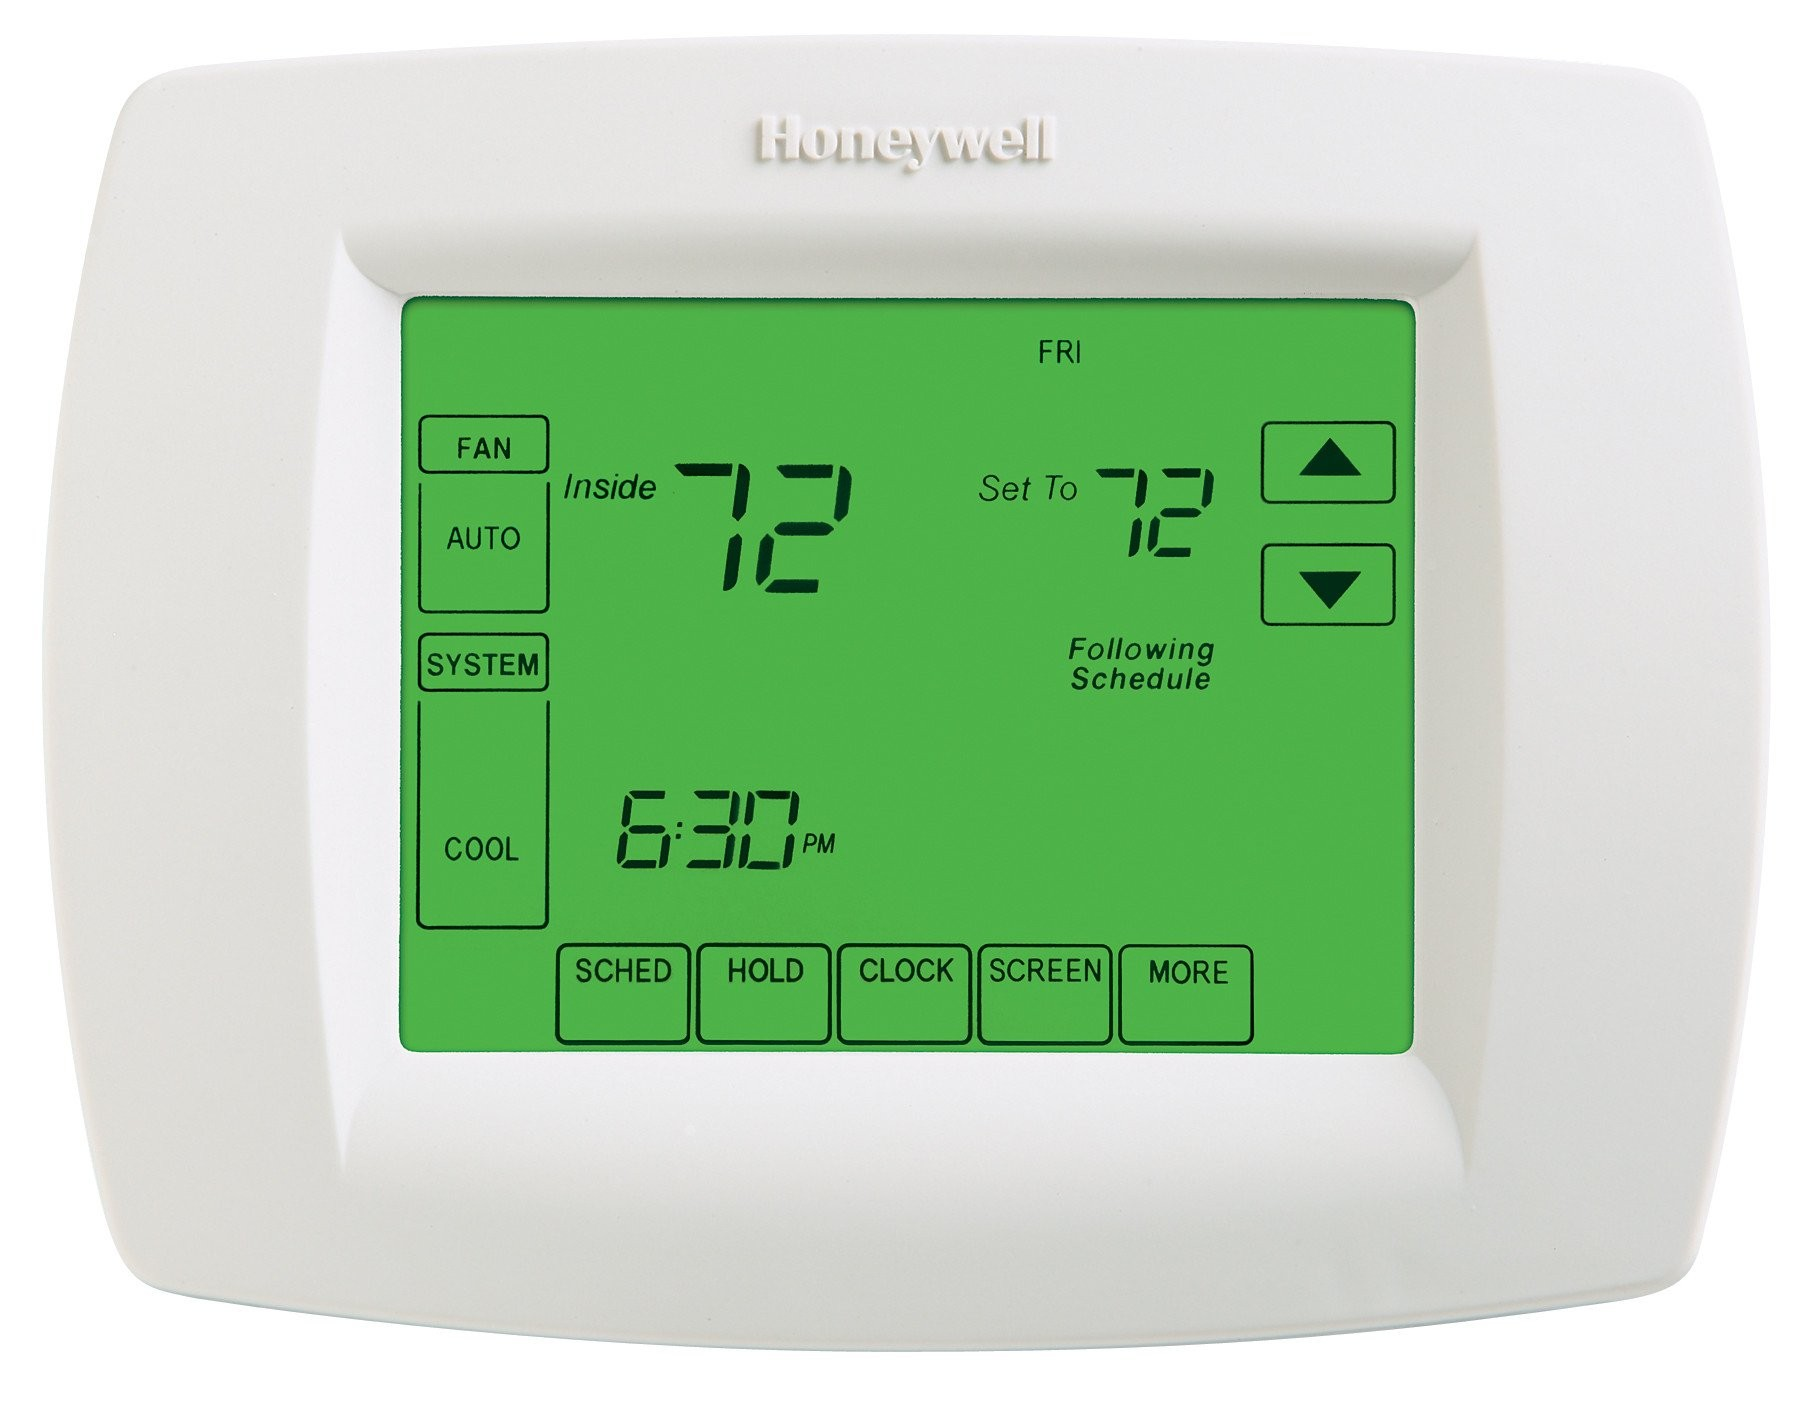 honeywell round thermostat wiring diagram elegant wiring diagram image thermostat transformer wiring honeywell th8110u1003 visionpro programmable 1h 1c touchscreen thermostat